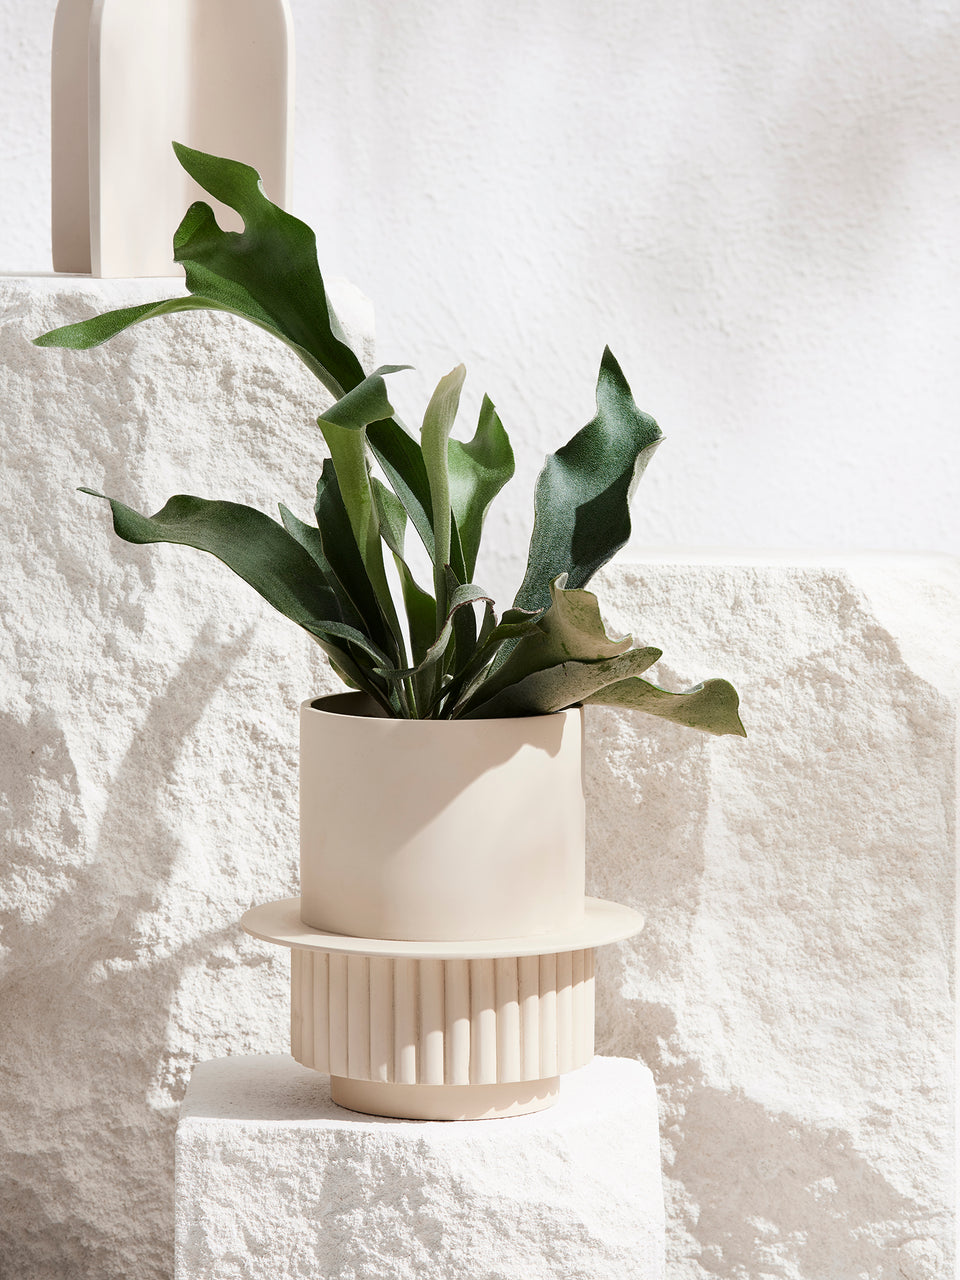 Capra Designs Roma Plant Pot Fossil with Tray